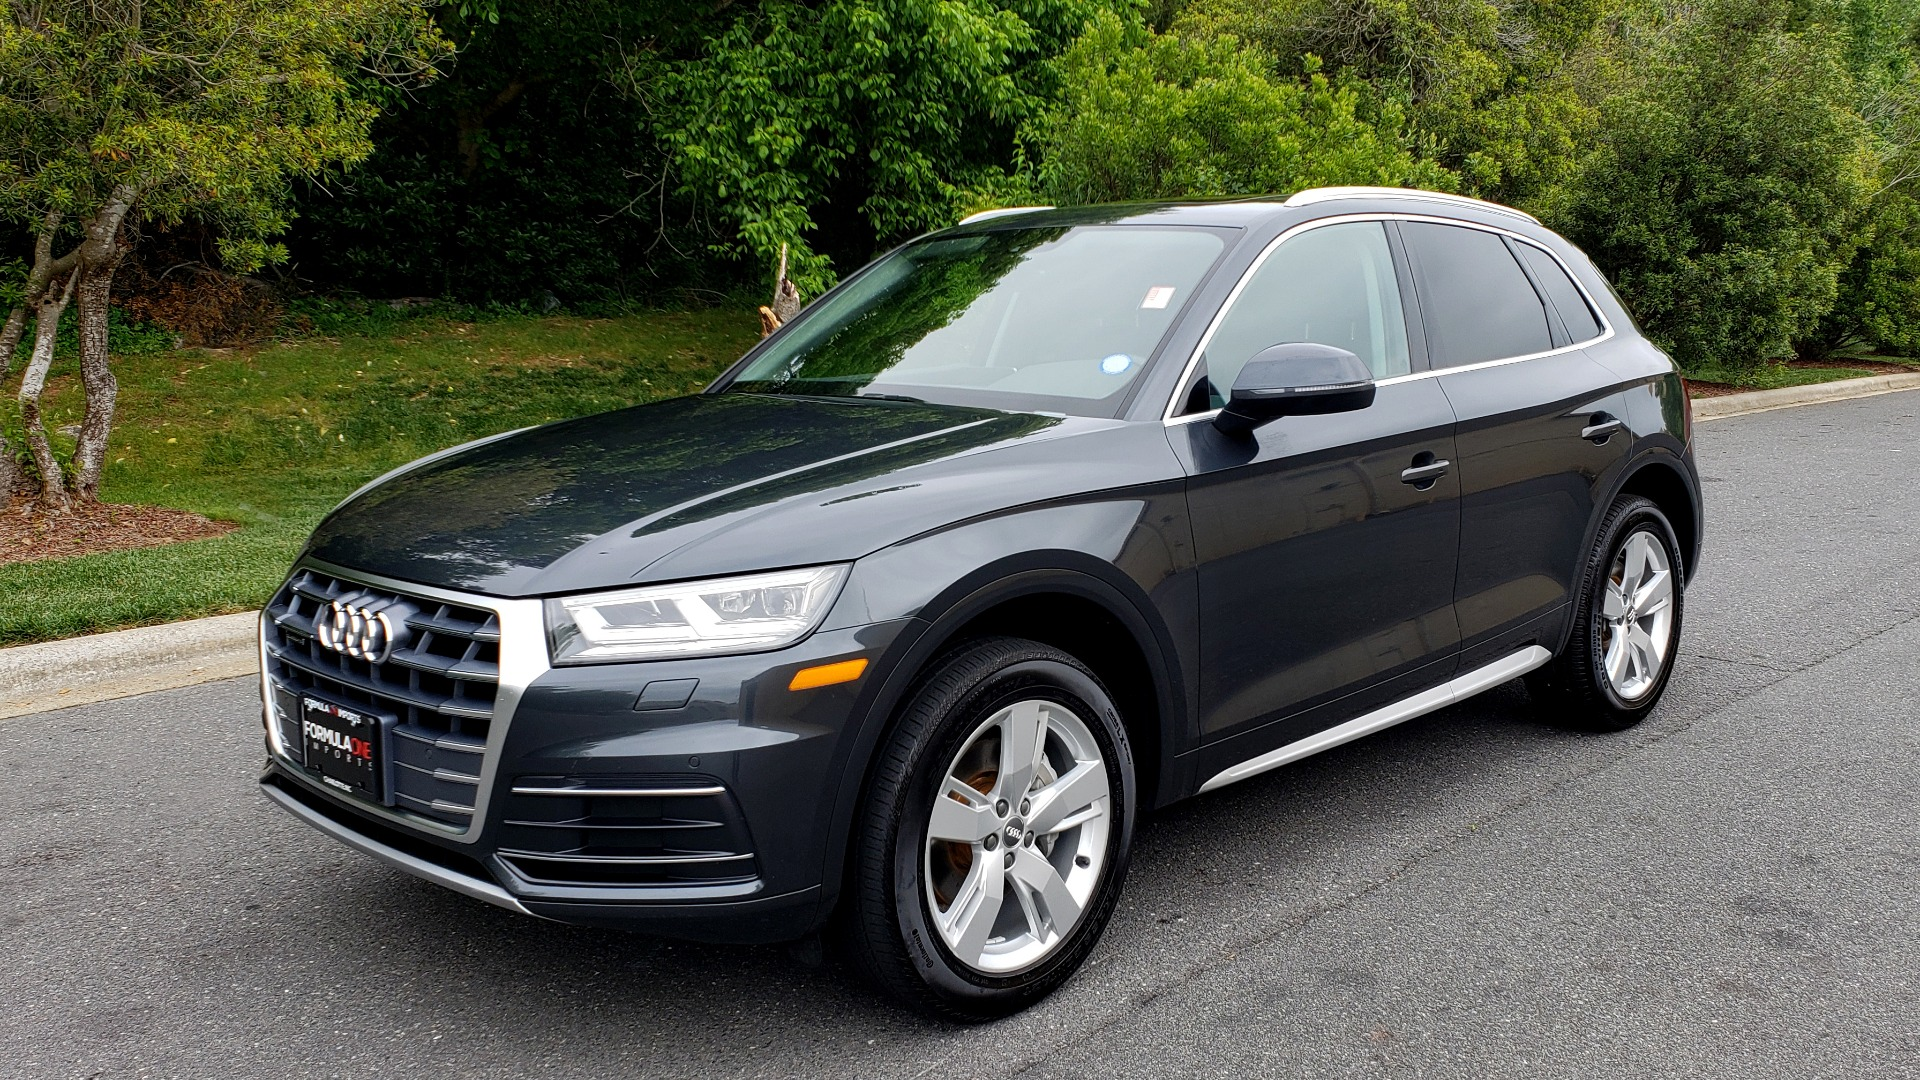 Used 2018 Audi Q5 PREMIUM PLUS / S-TRONIC / NAV / PANO-ROOF / PARK SYS PLUS for sale Sold at Formula Imports in Charlotte NC 28227 1